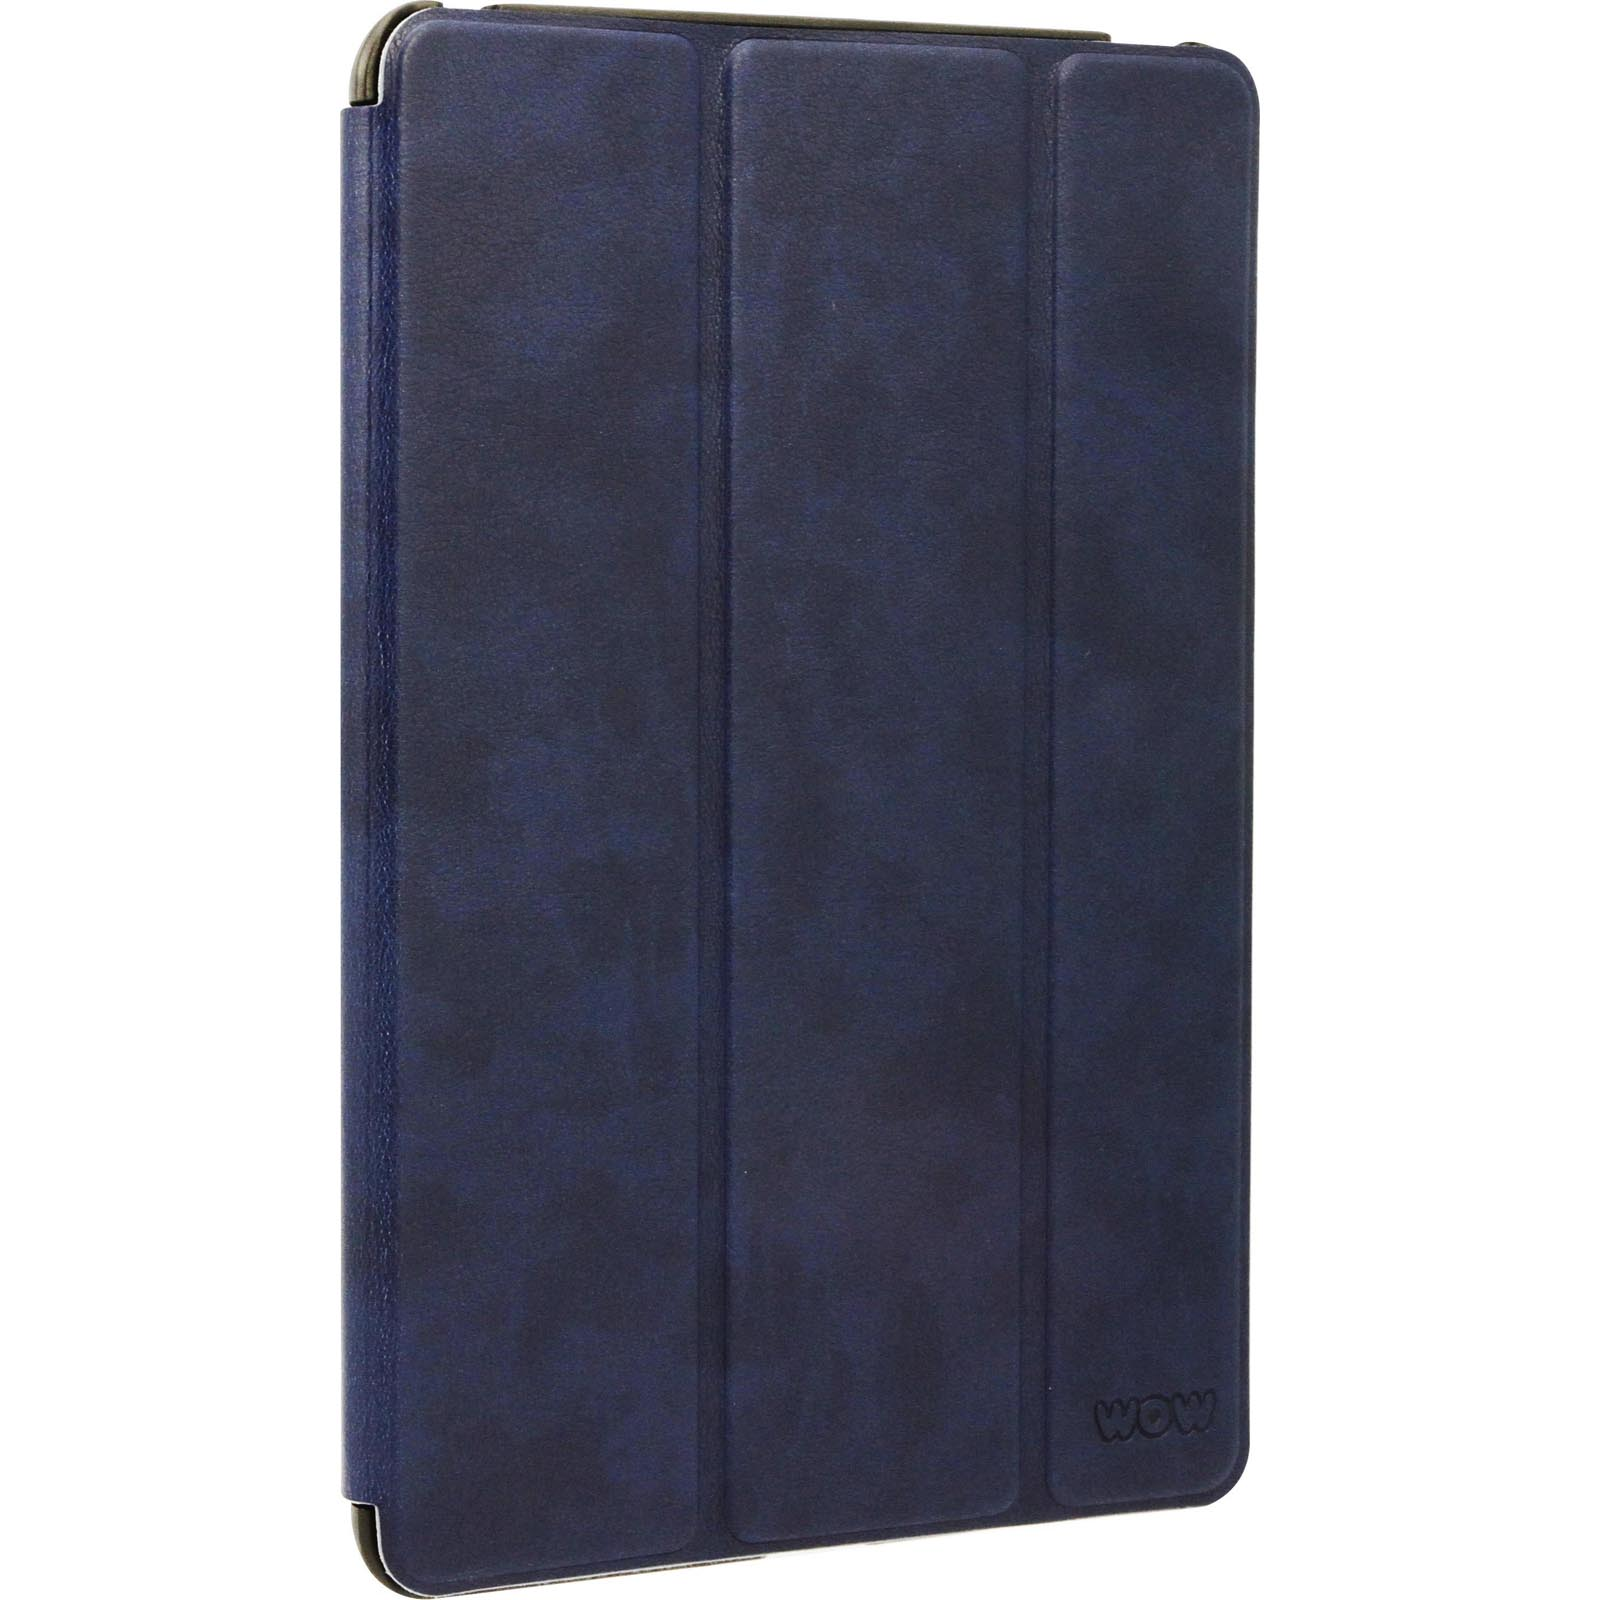 WOW Protective Case for iPad Mini - Blue